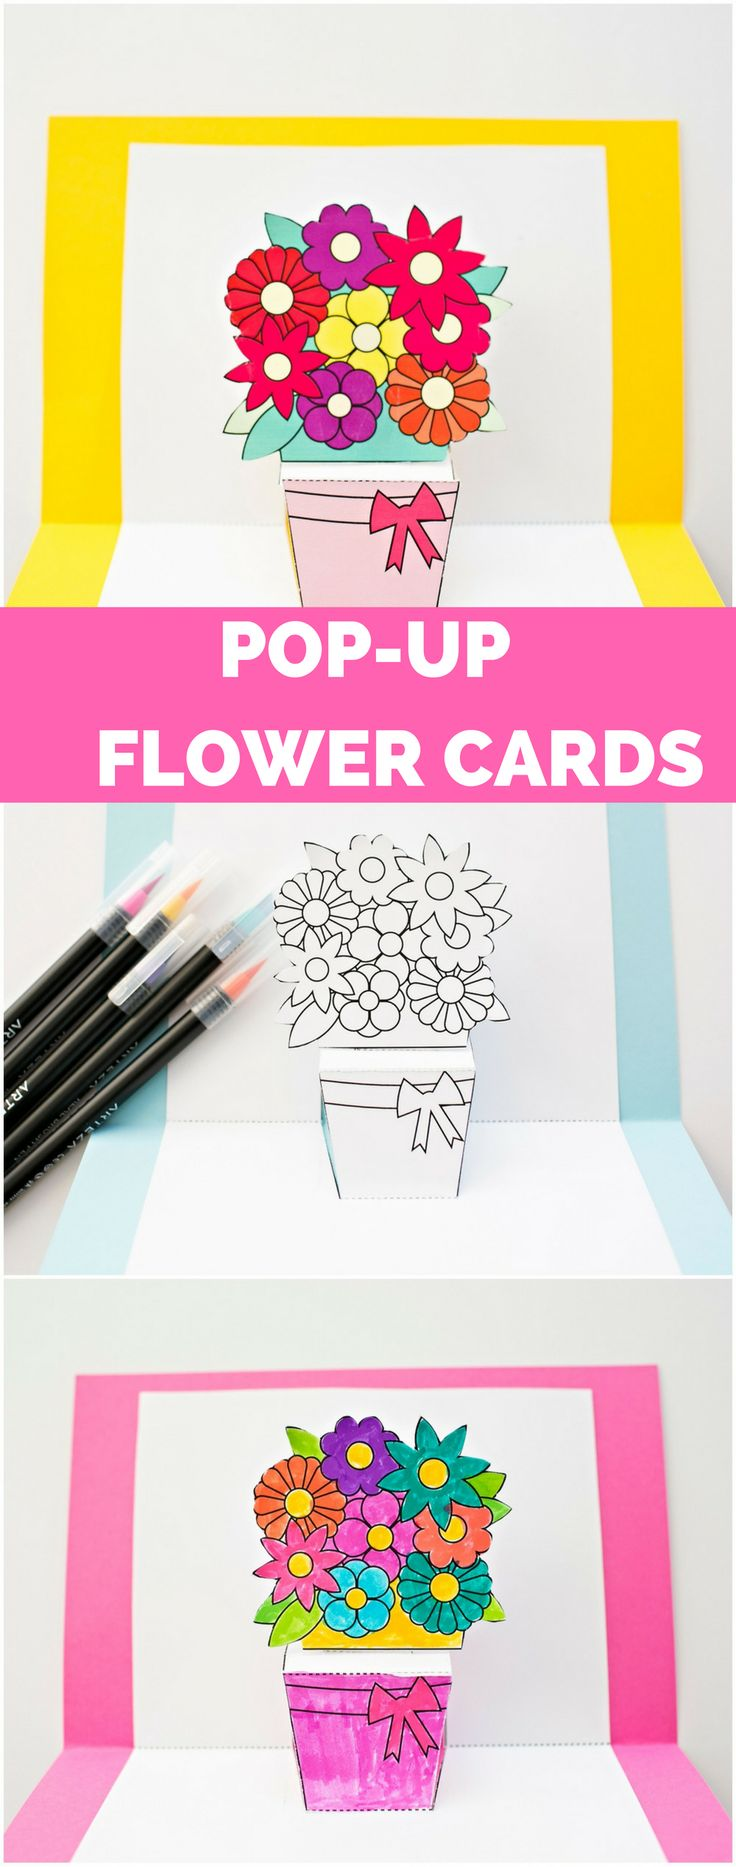 DIY Pop-Up Flower Cards. With free printable templates and options to color your own. Cute Mother's Day, spring or birthday paper card kids can make!